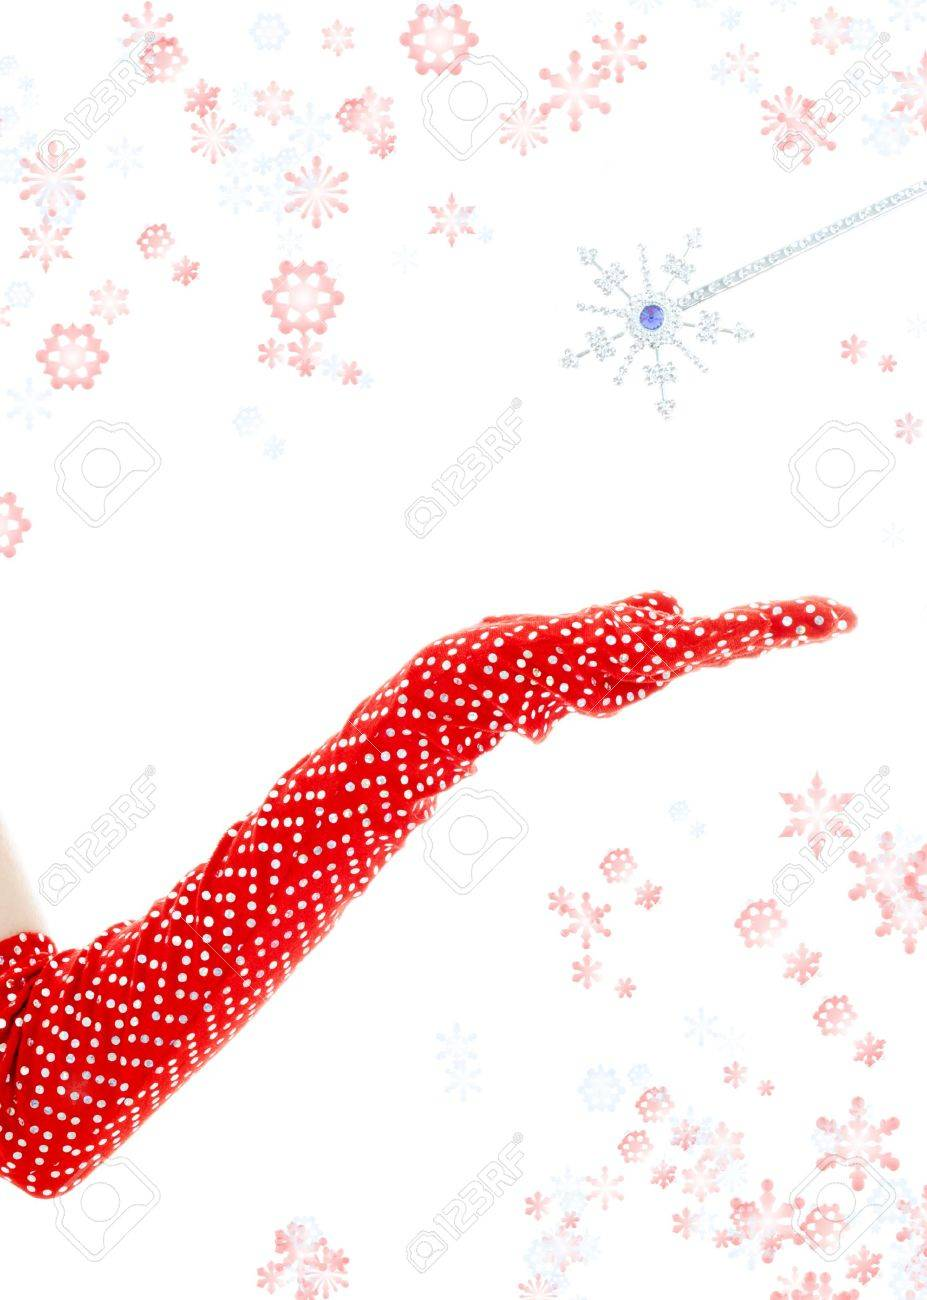 casting a spell with magic wand surrounded by rendered snowflakes Stock Photo - 634607